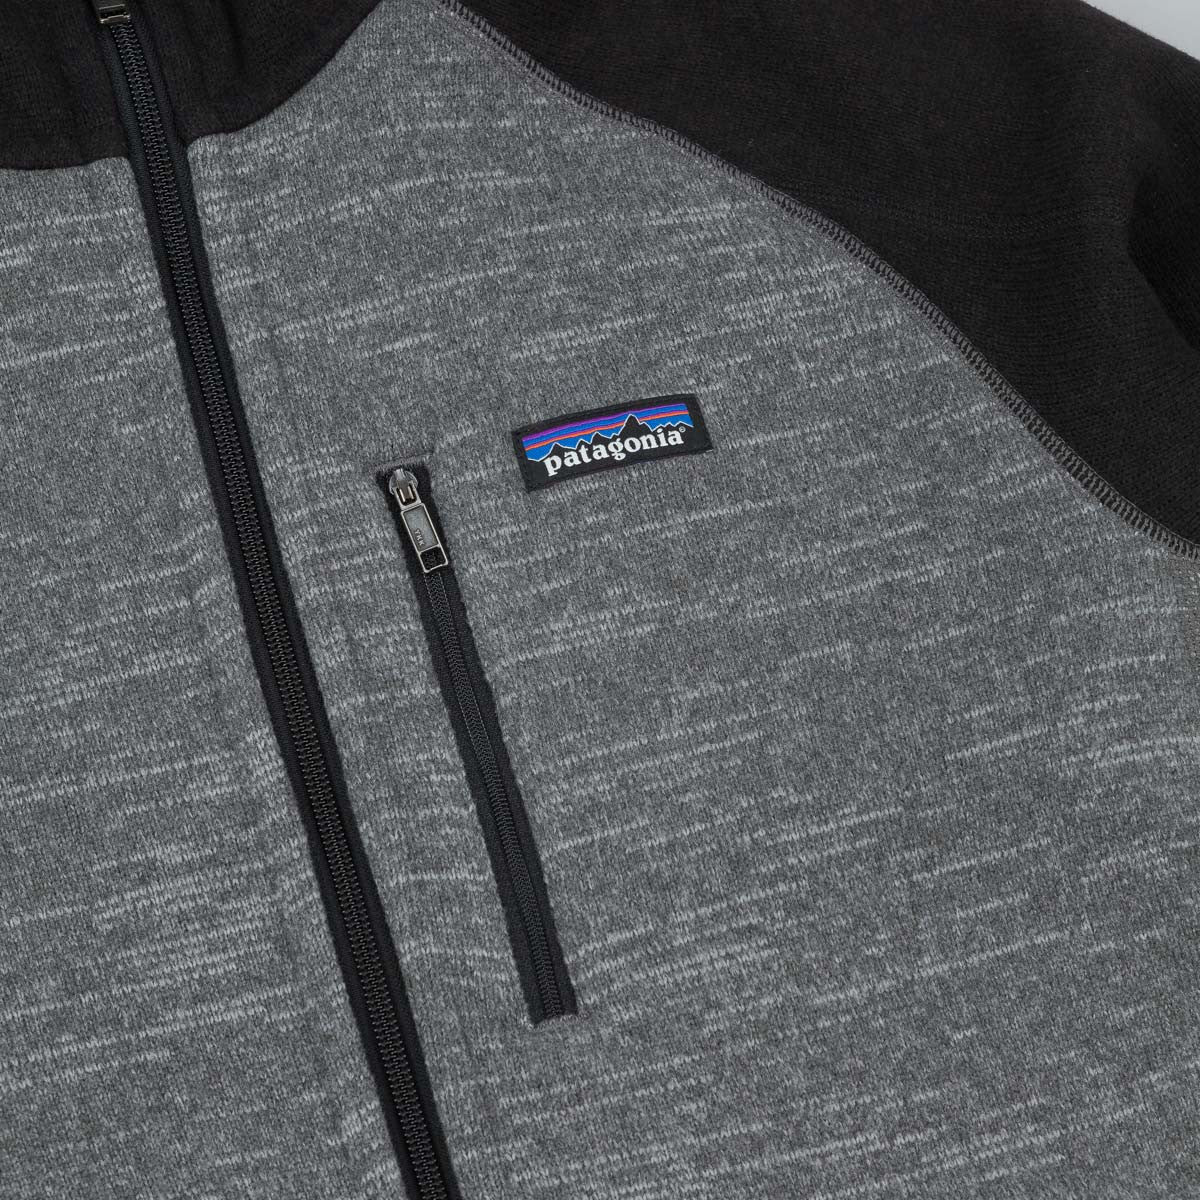 Patagonia Better Sweater Hooded Fleece - Nickel / Forge Grey